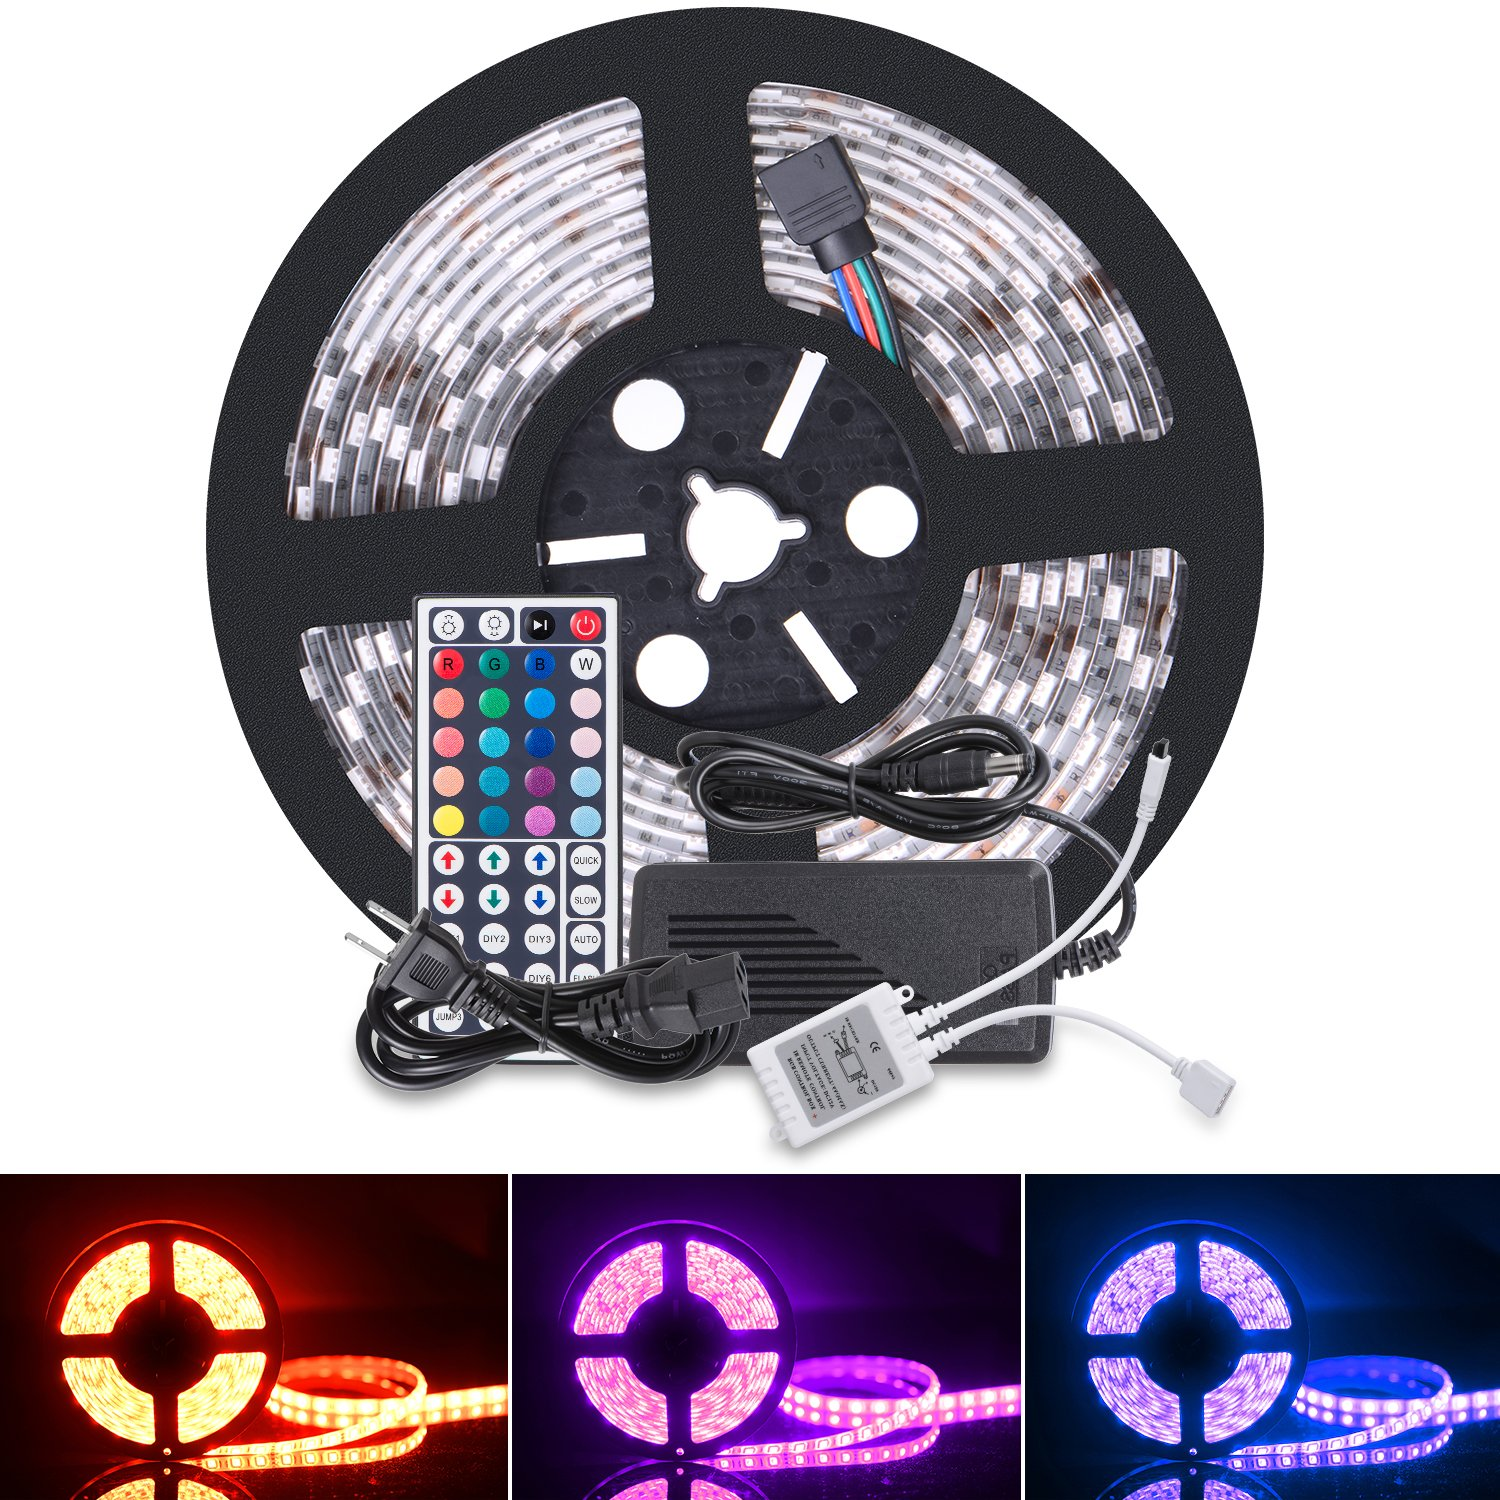 Led Rope Lights On Amazon: Free Shipping Boomile Led Strip Lights, Waterproof SMD